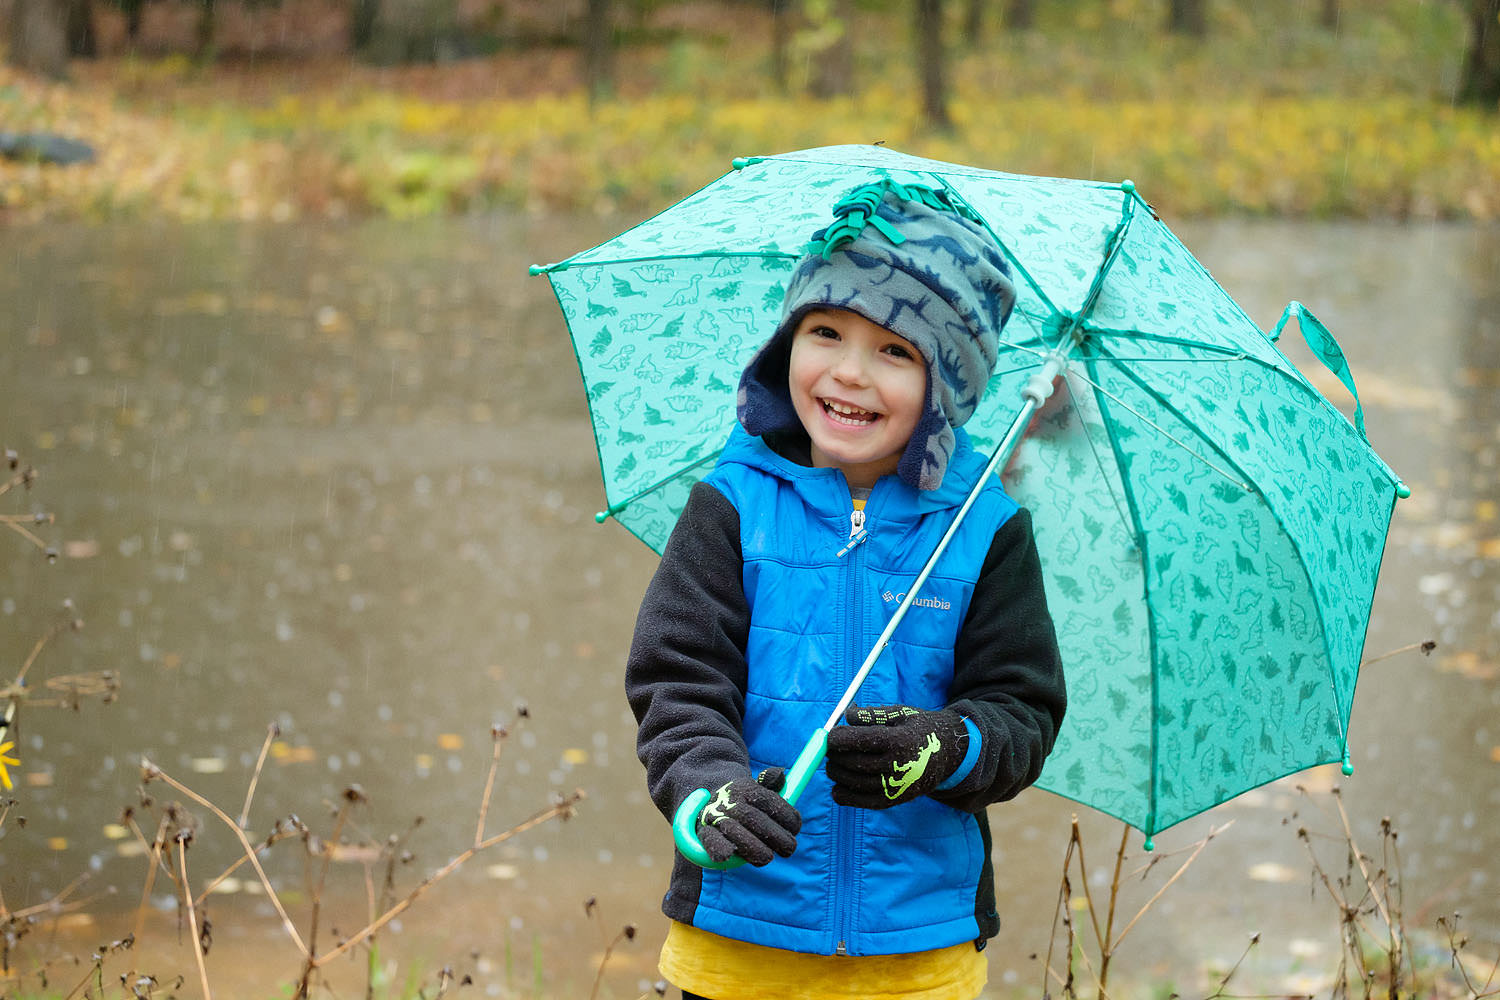 Child with umbrella in the rain